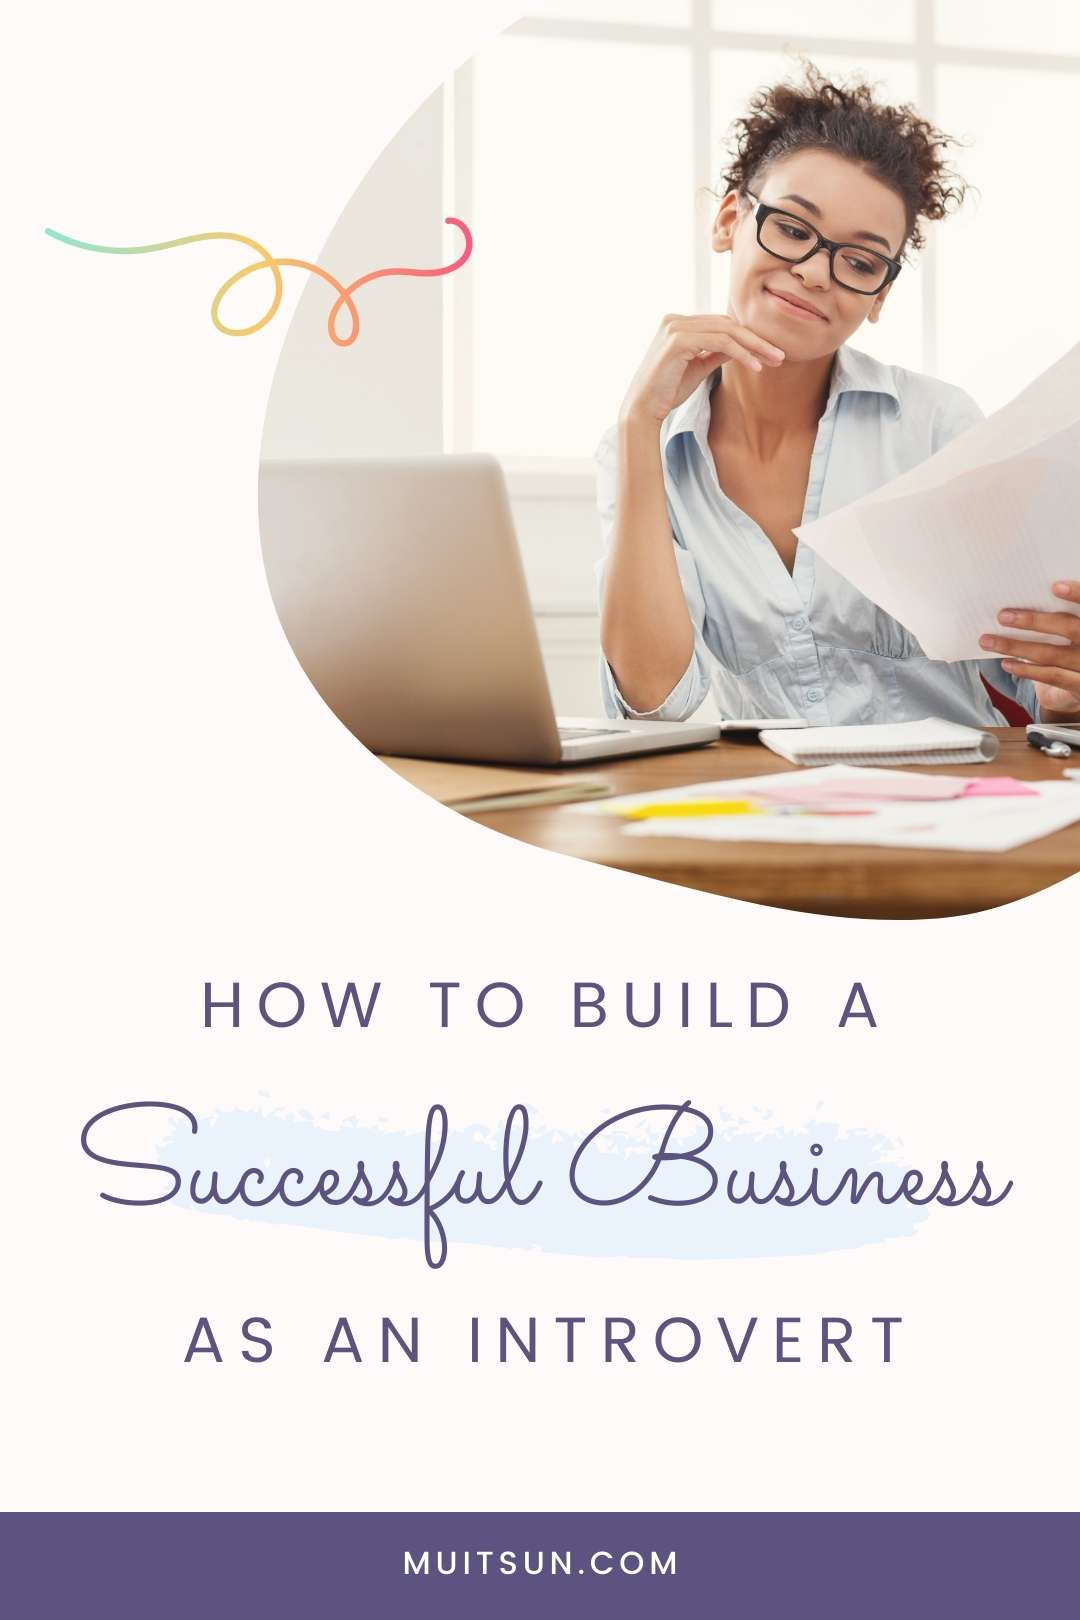 How to Build a Successful Business as an Introvert